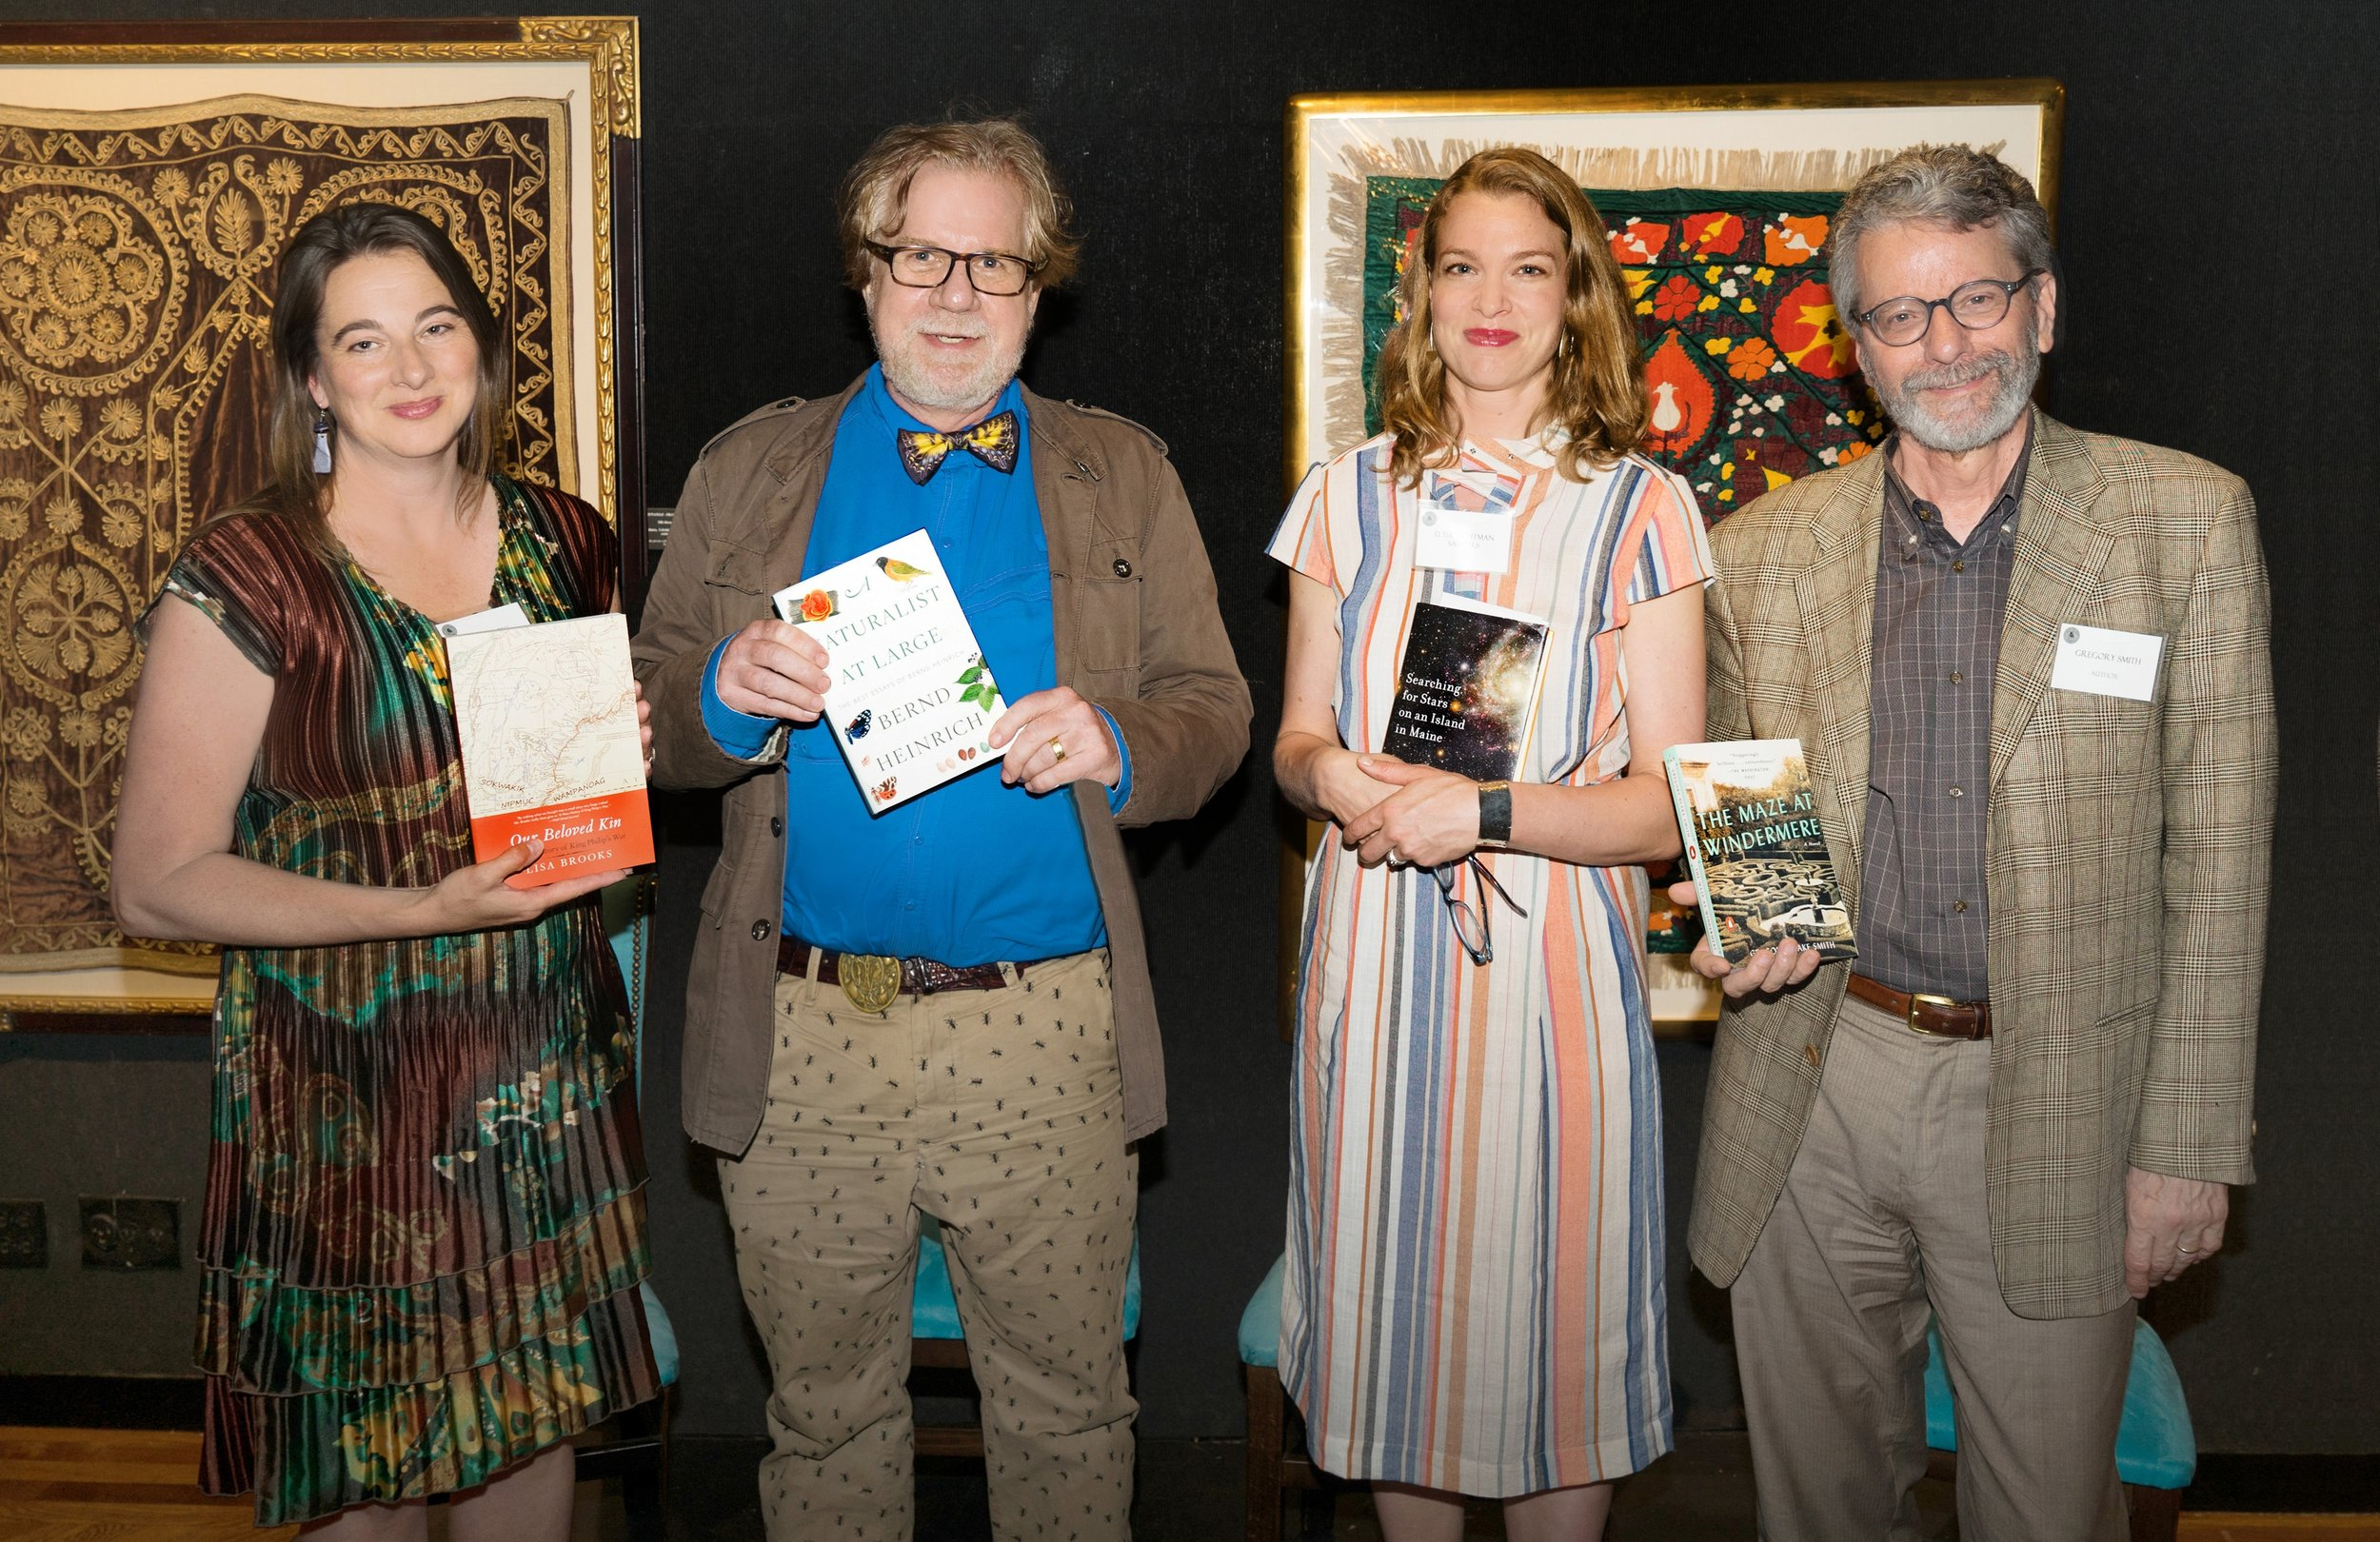 Book Awards Salon| June 26, 2019 | The National Arts Club